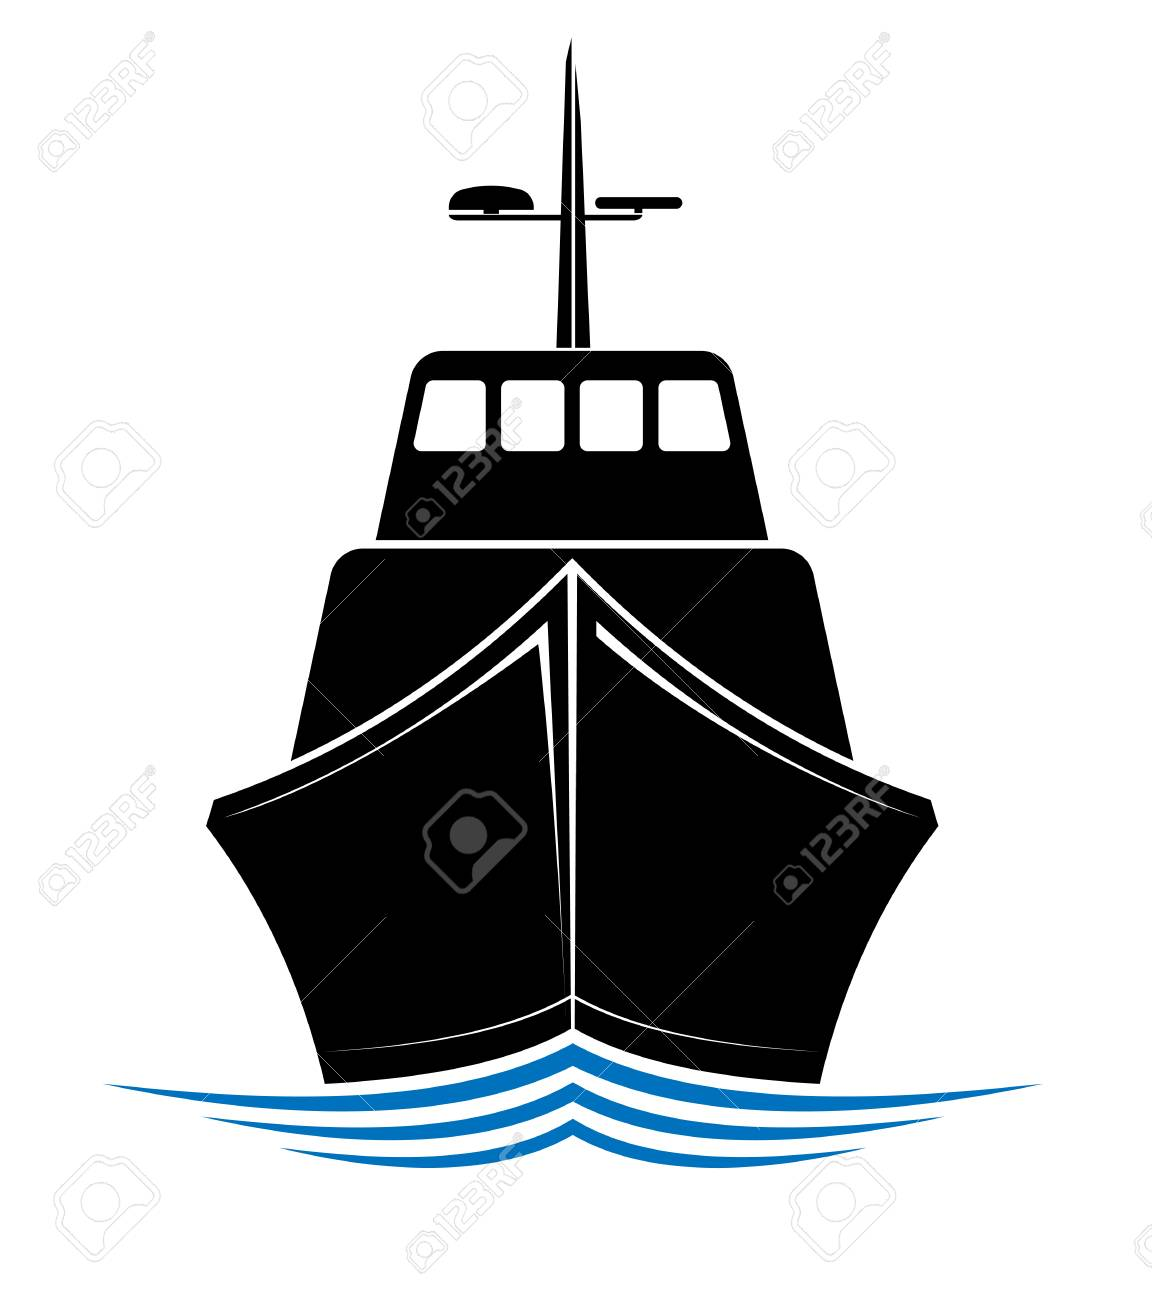 Frontal view of a floating ship, tug or boat  Logo for sea, ocean